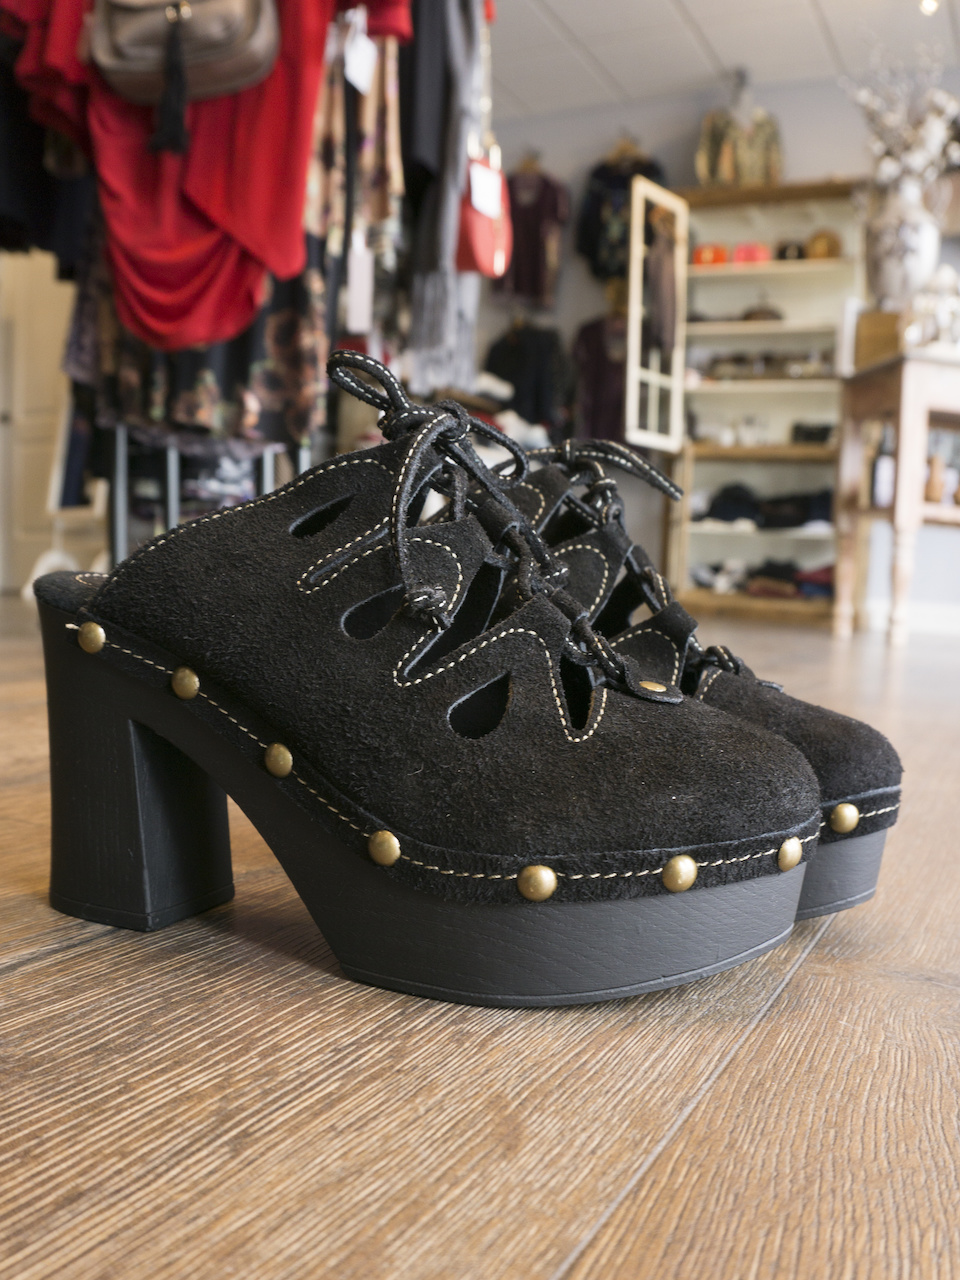 Pair the above shift dress with these super cool black lace-up clogs, $89, at Blu Boutique.